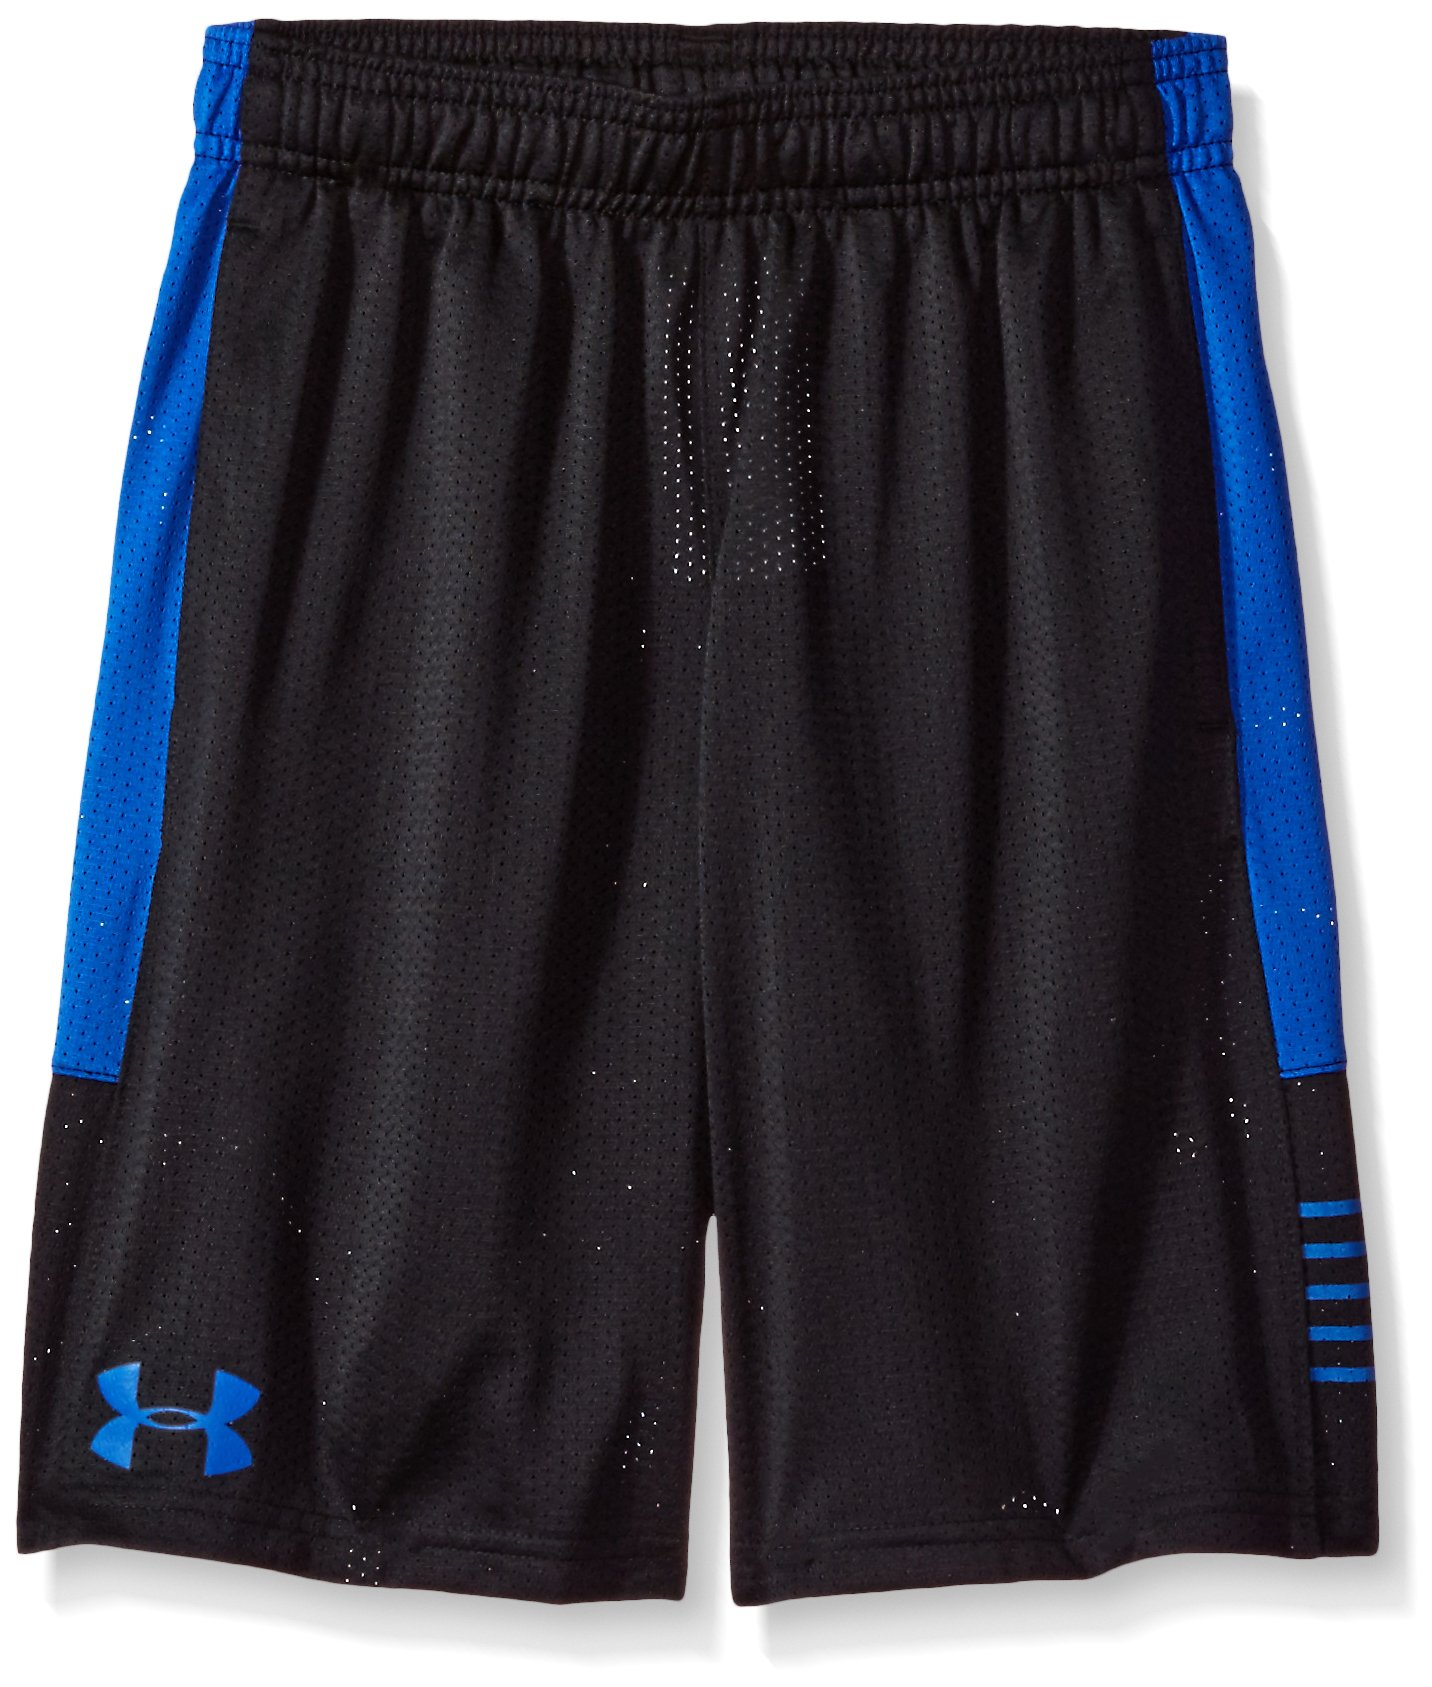 Under Armour Boys' Train To Game Shorts,Black (001)/Ultra Blue, Youth X-Small